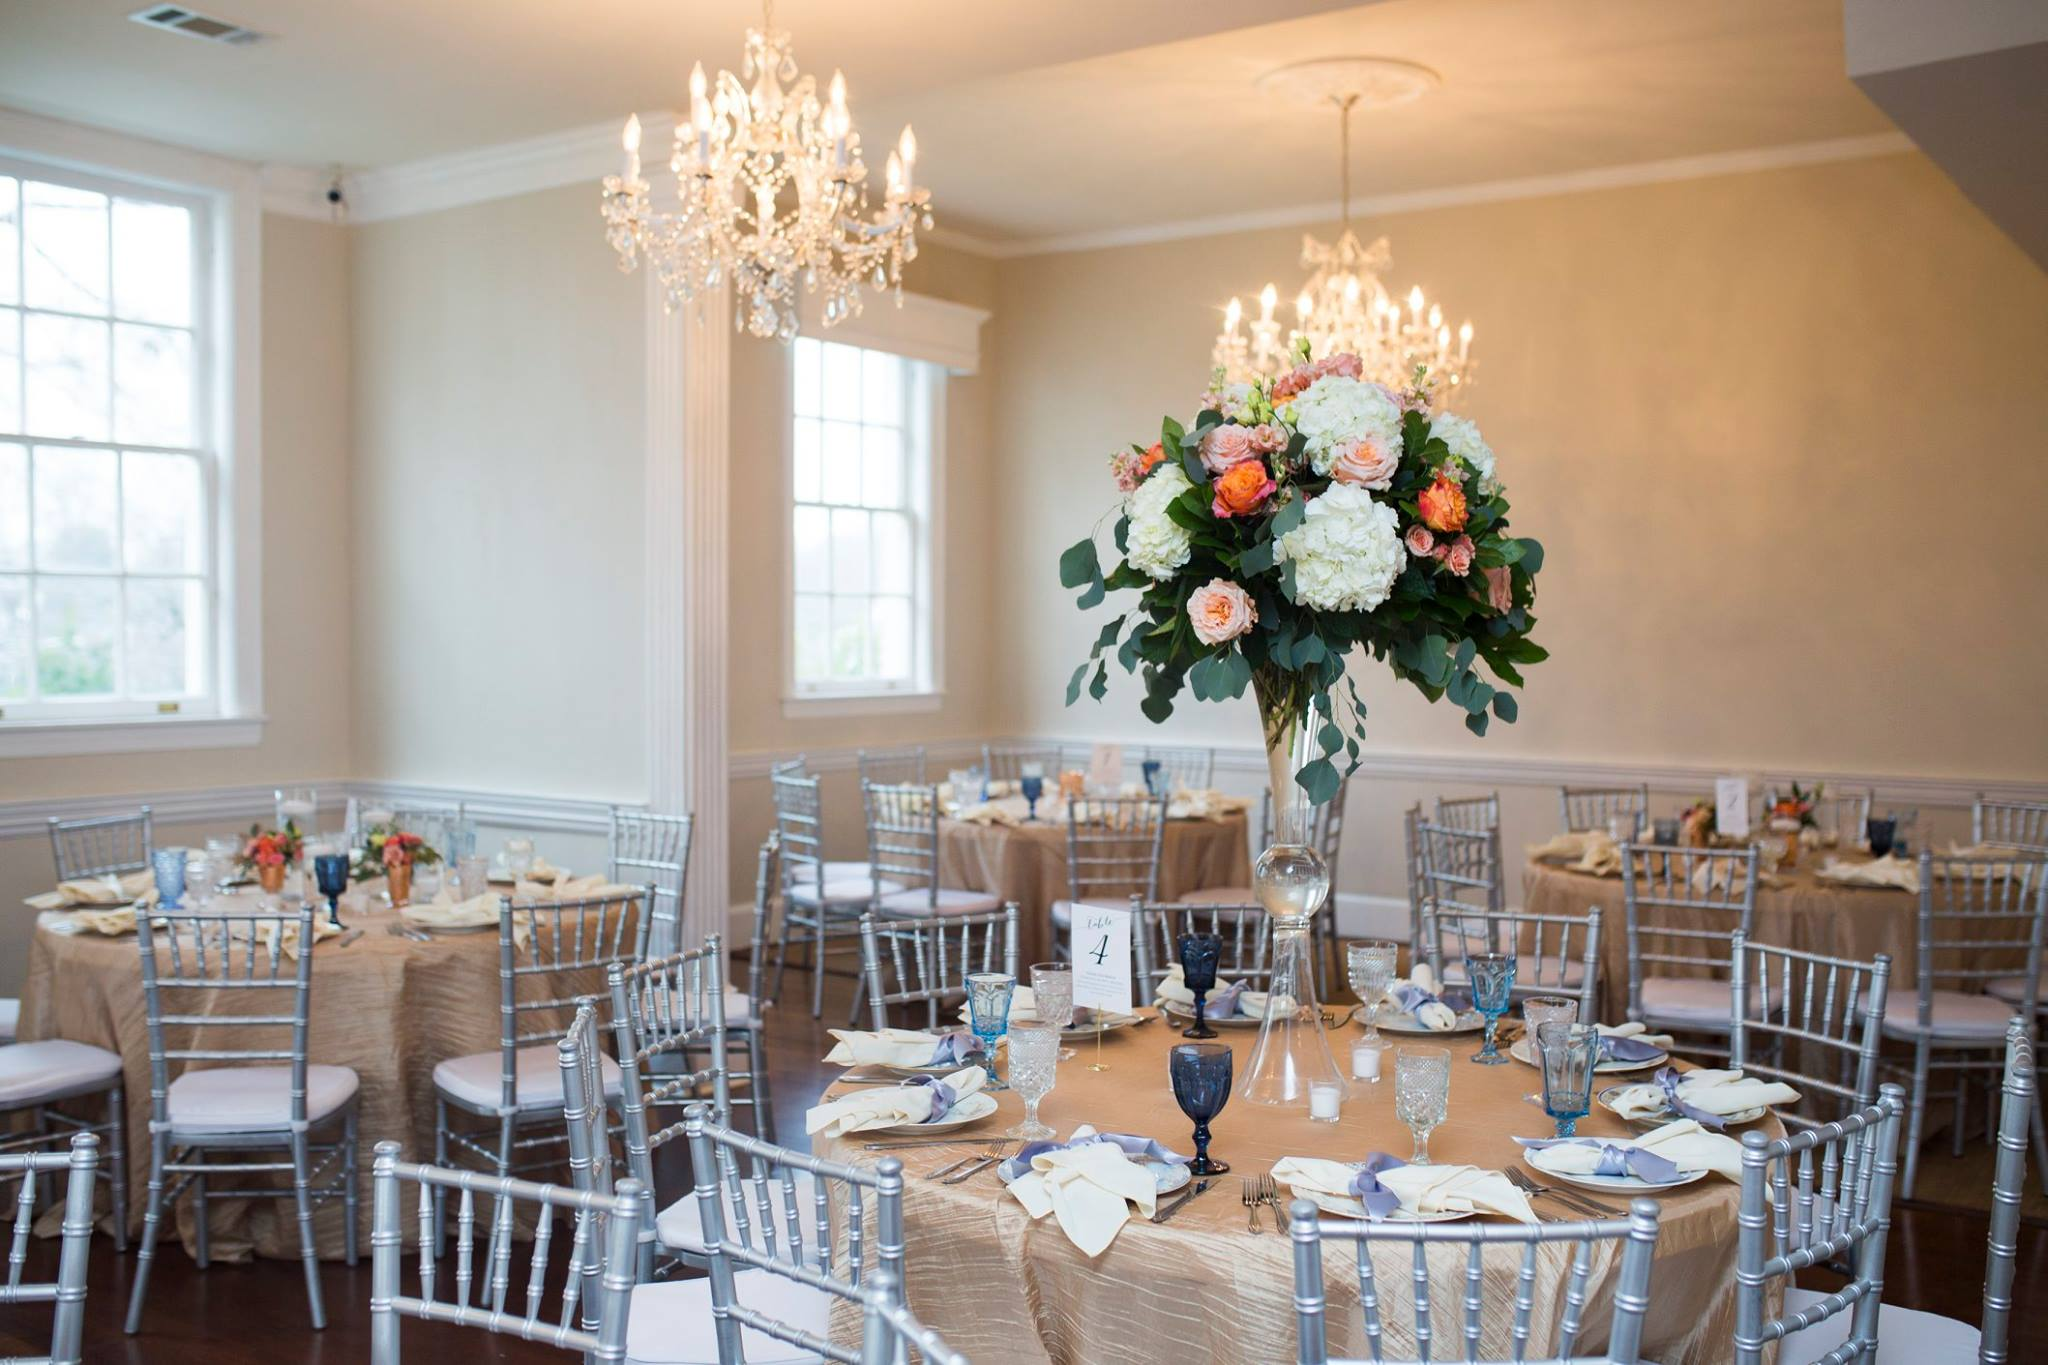 Wedding reception tables set with blush linens and vintage dishes from Evermore accented with tall florals designed by What's Up Buttercup